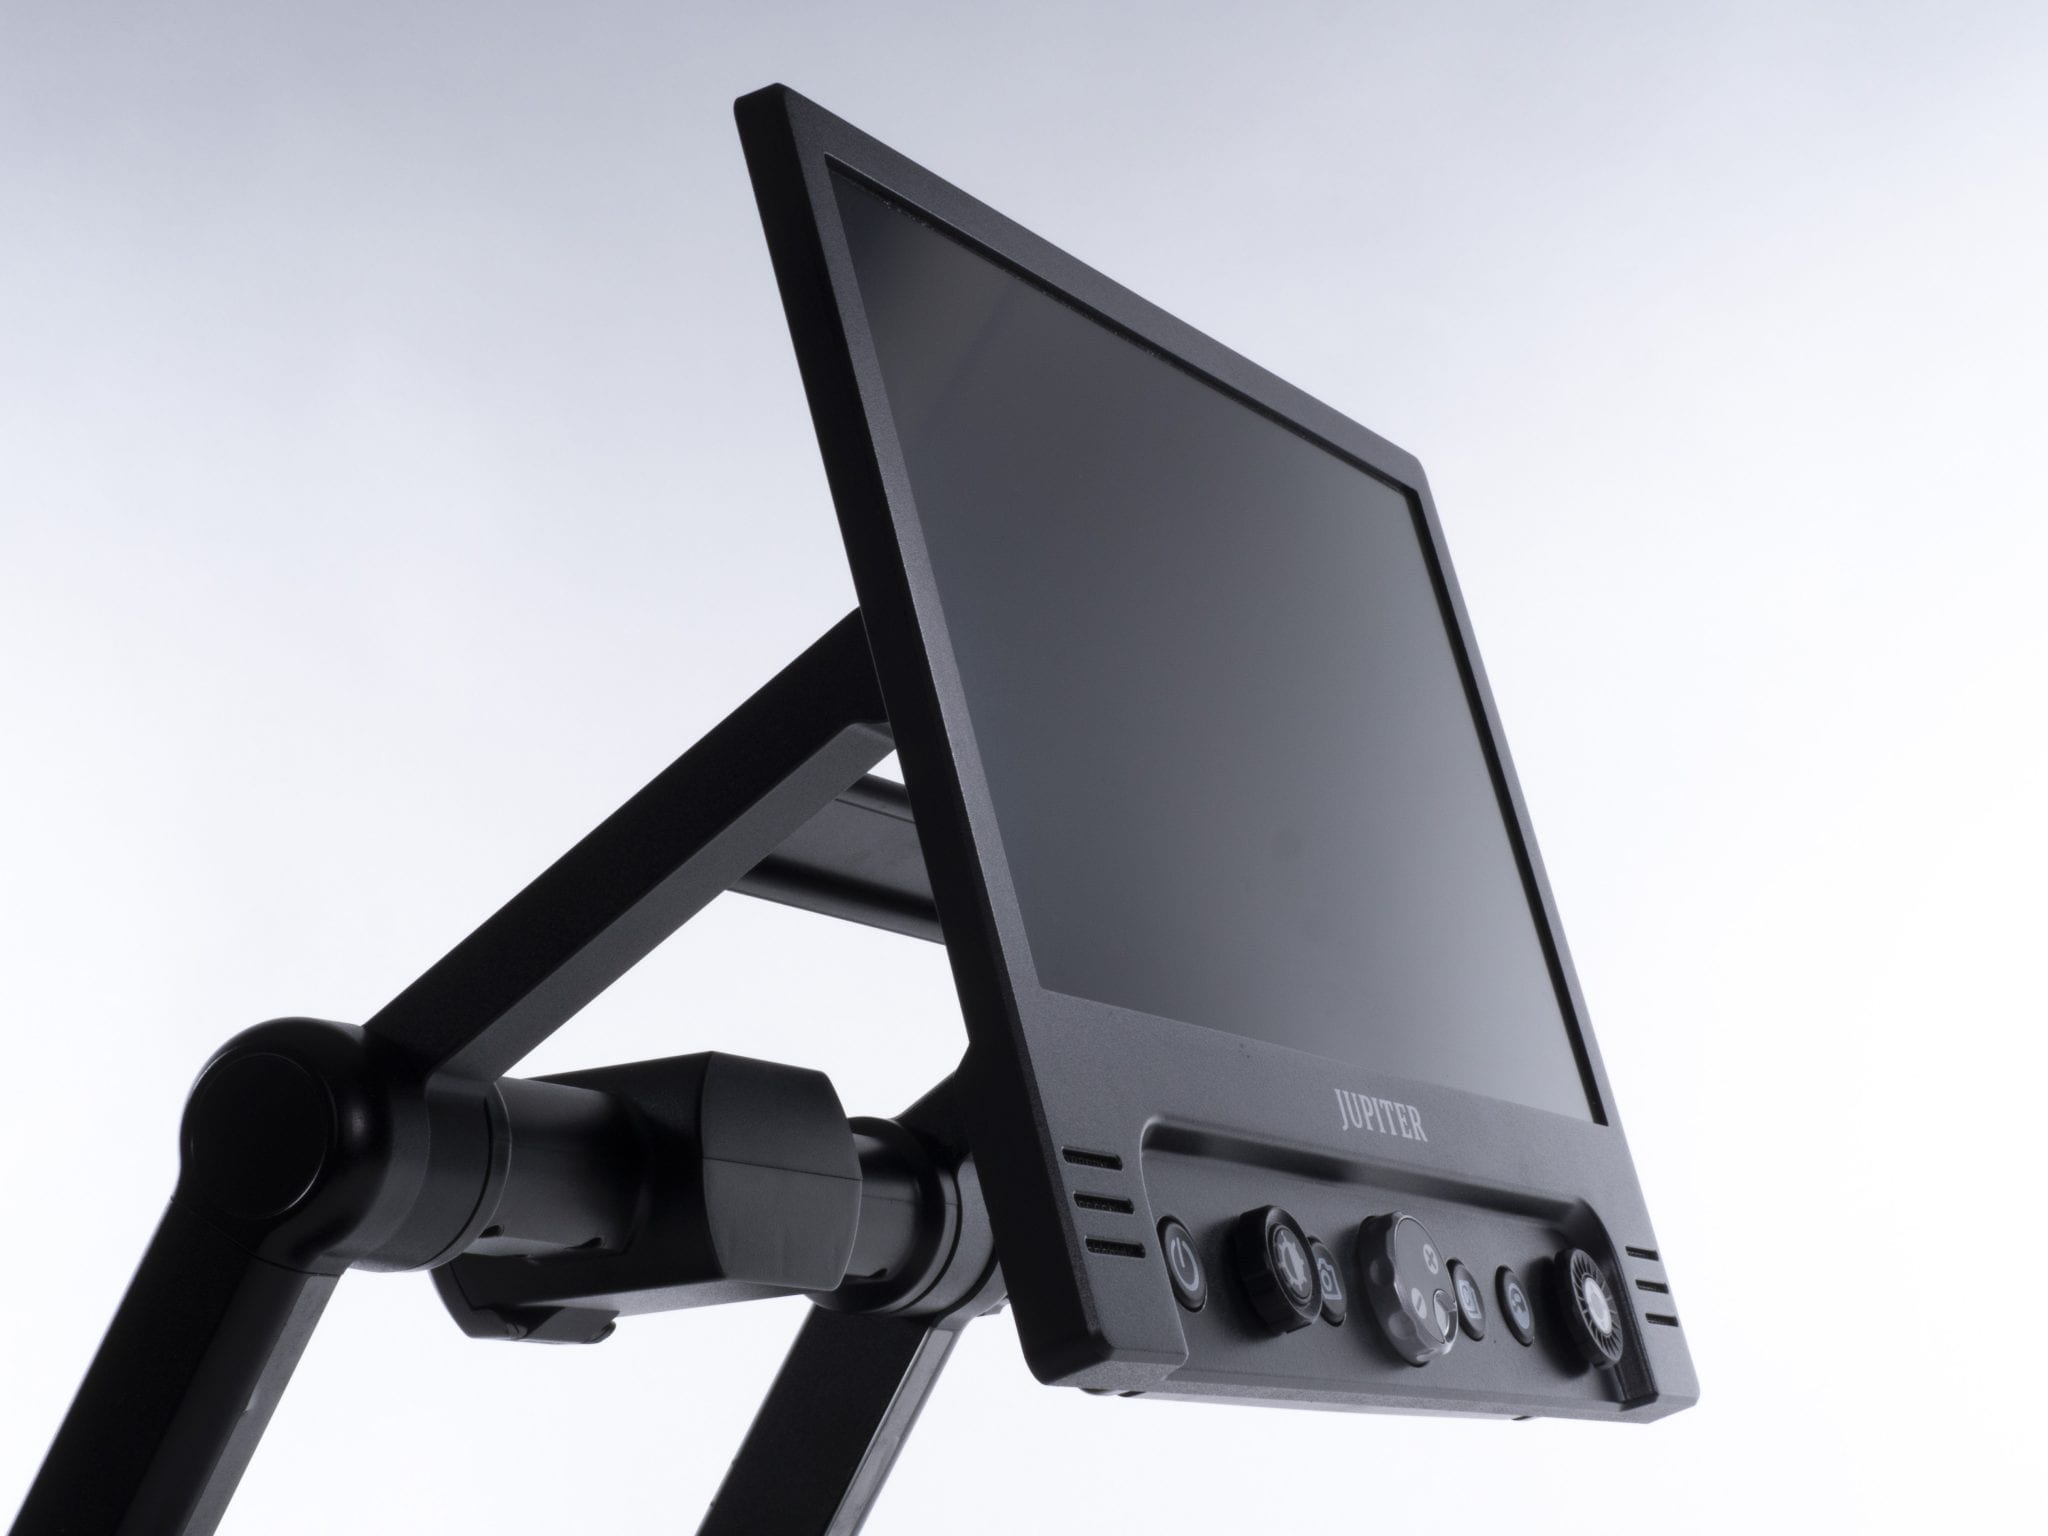 Jupiter magnifier screen, shows knobs and buttons. Product is sleek and black on a white background.